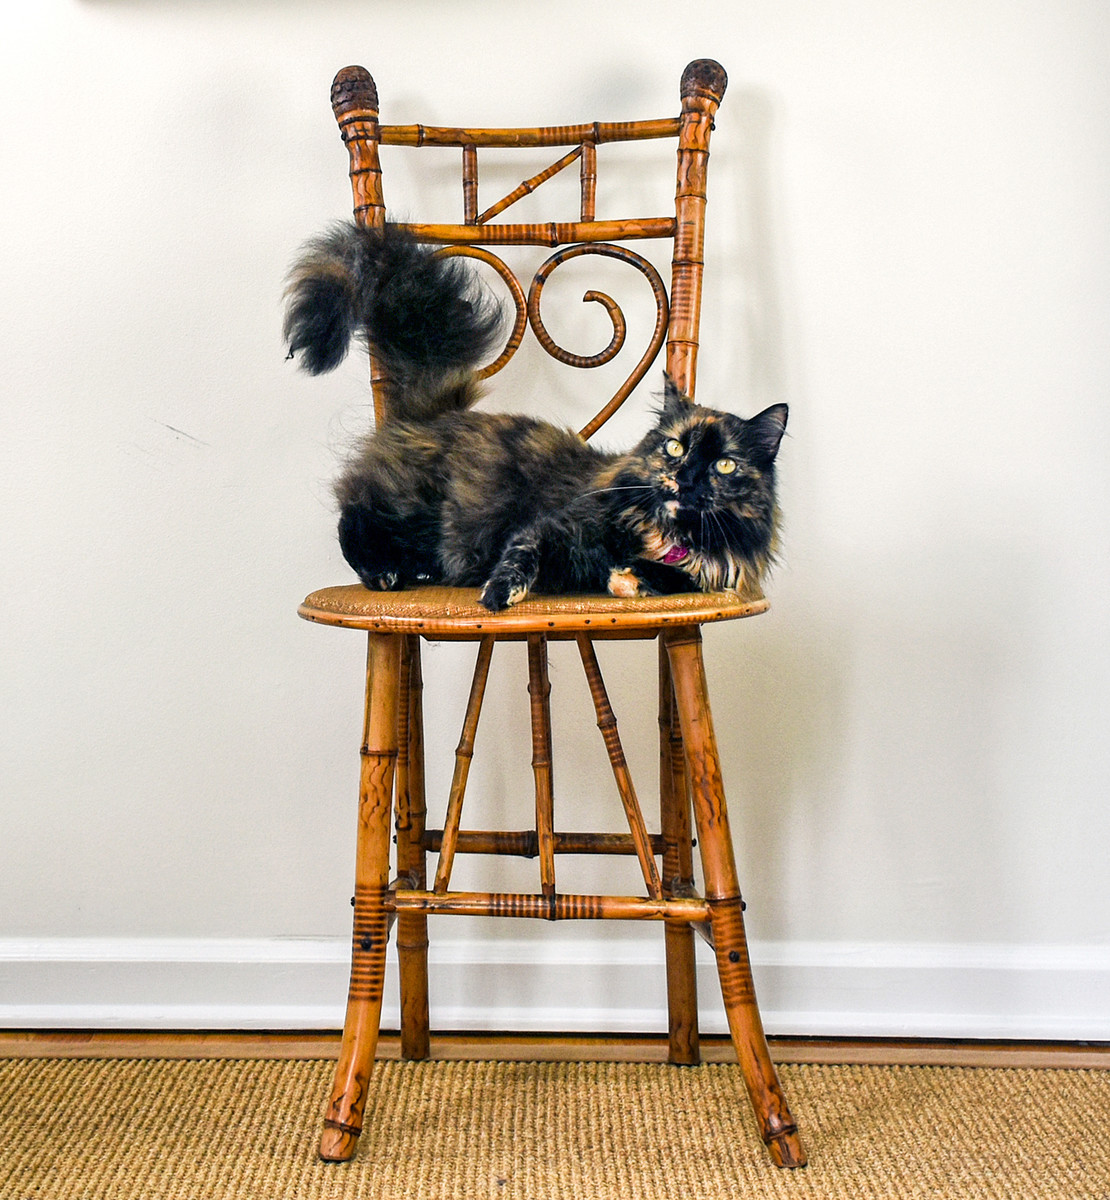 Bamboo Chair; Matching Cat